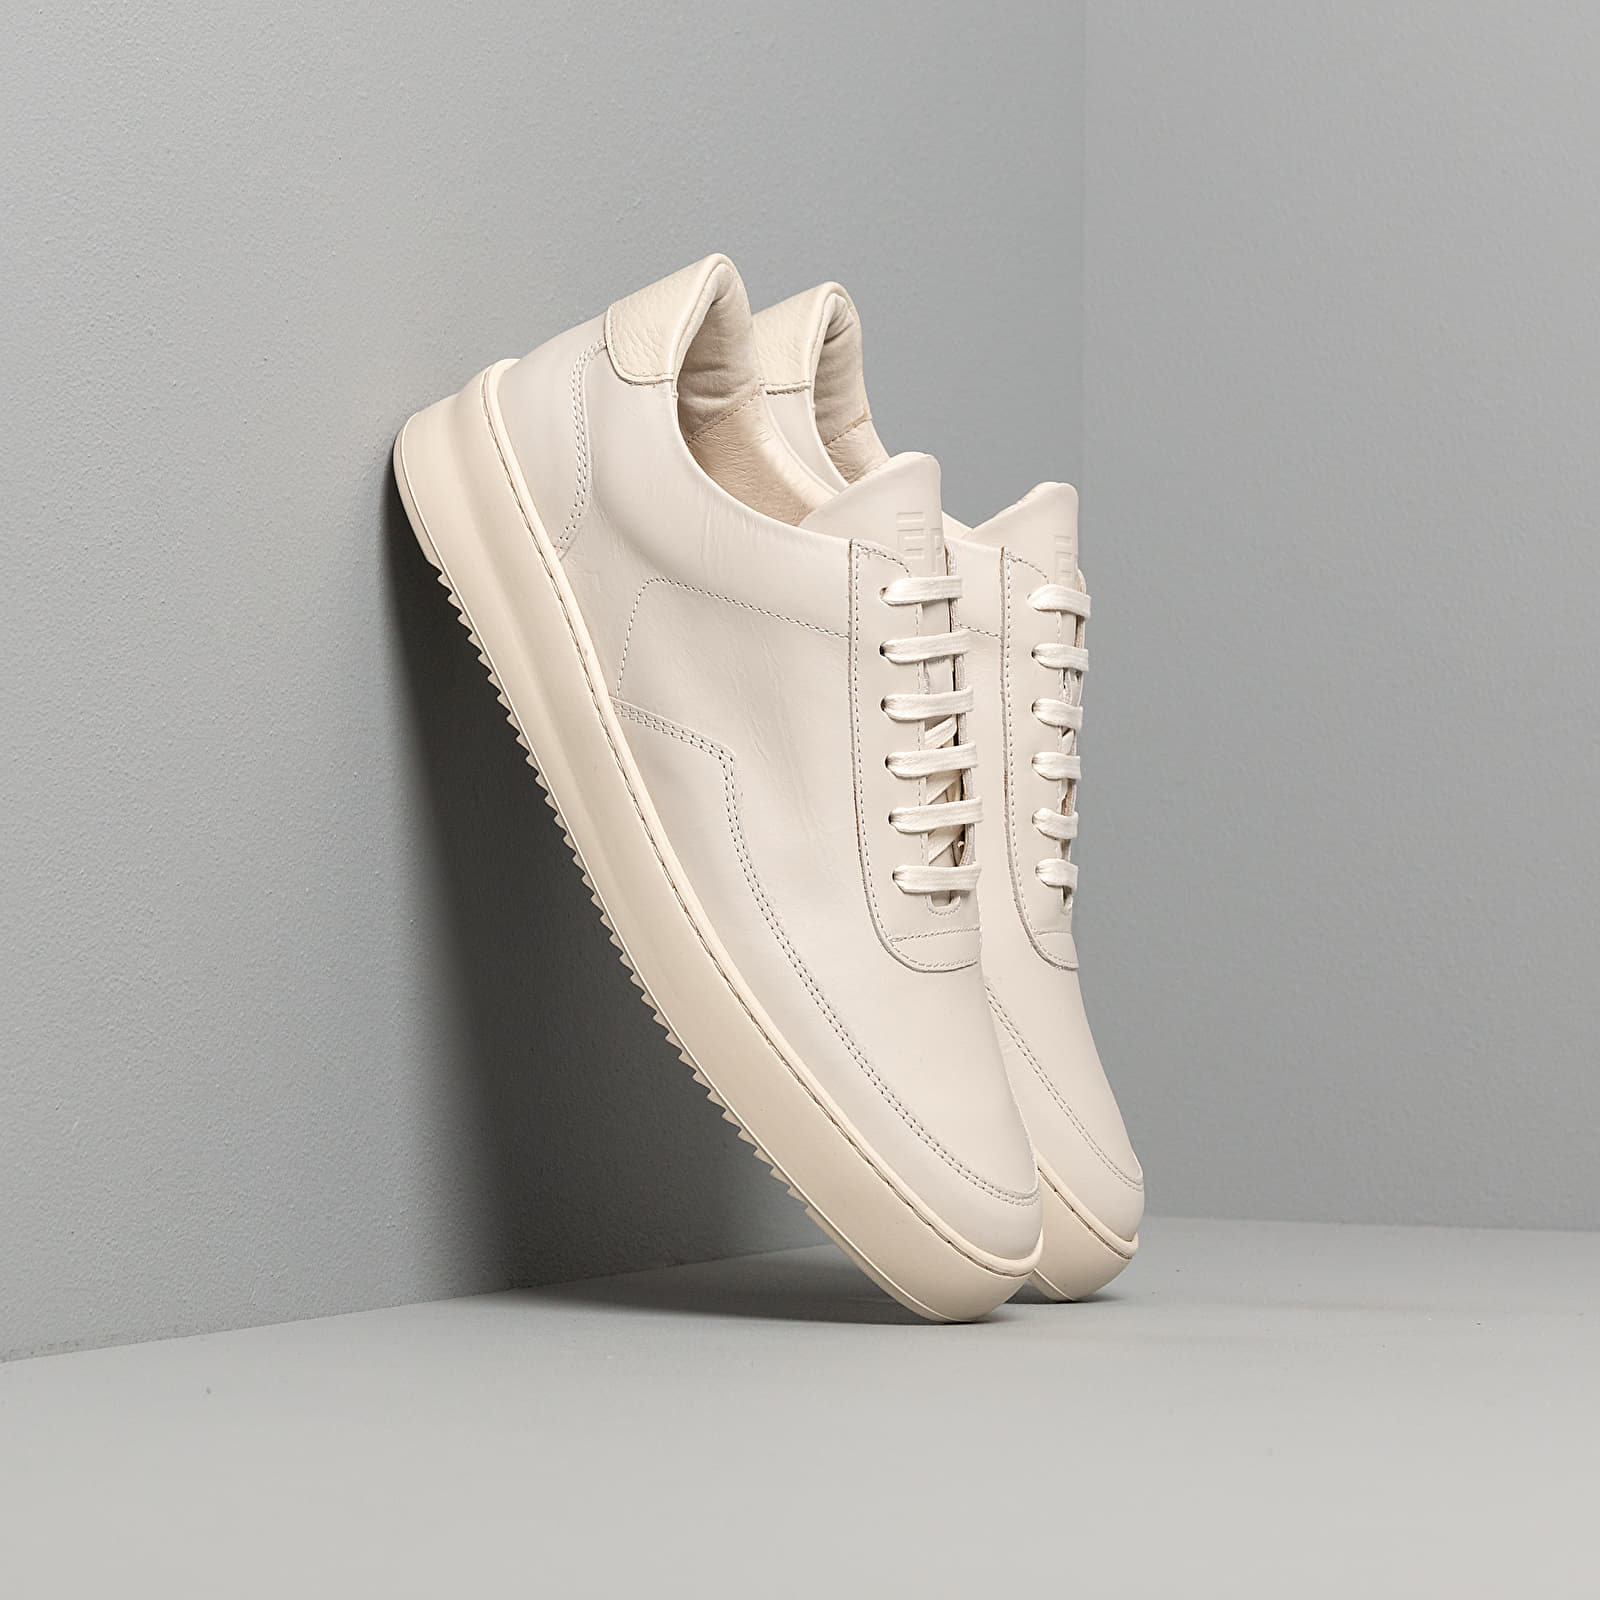 Men's shoes Filling Pieces Low Mondo Ripple Nardo Nappa All White